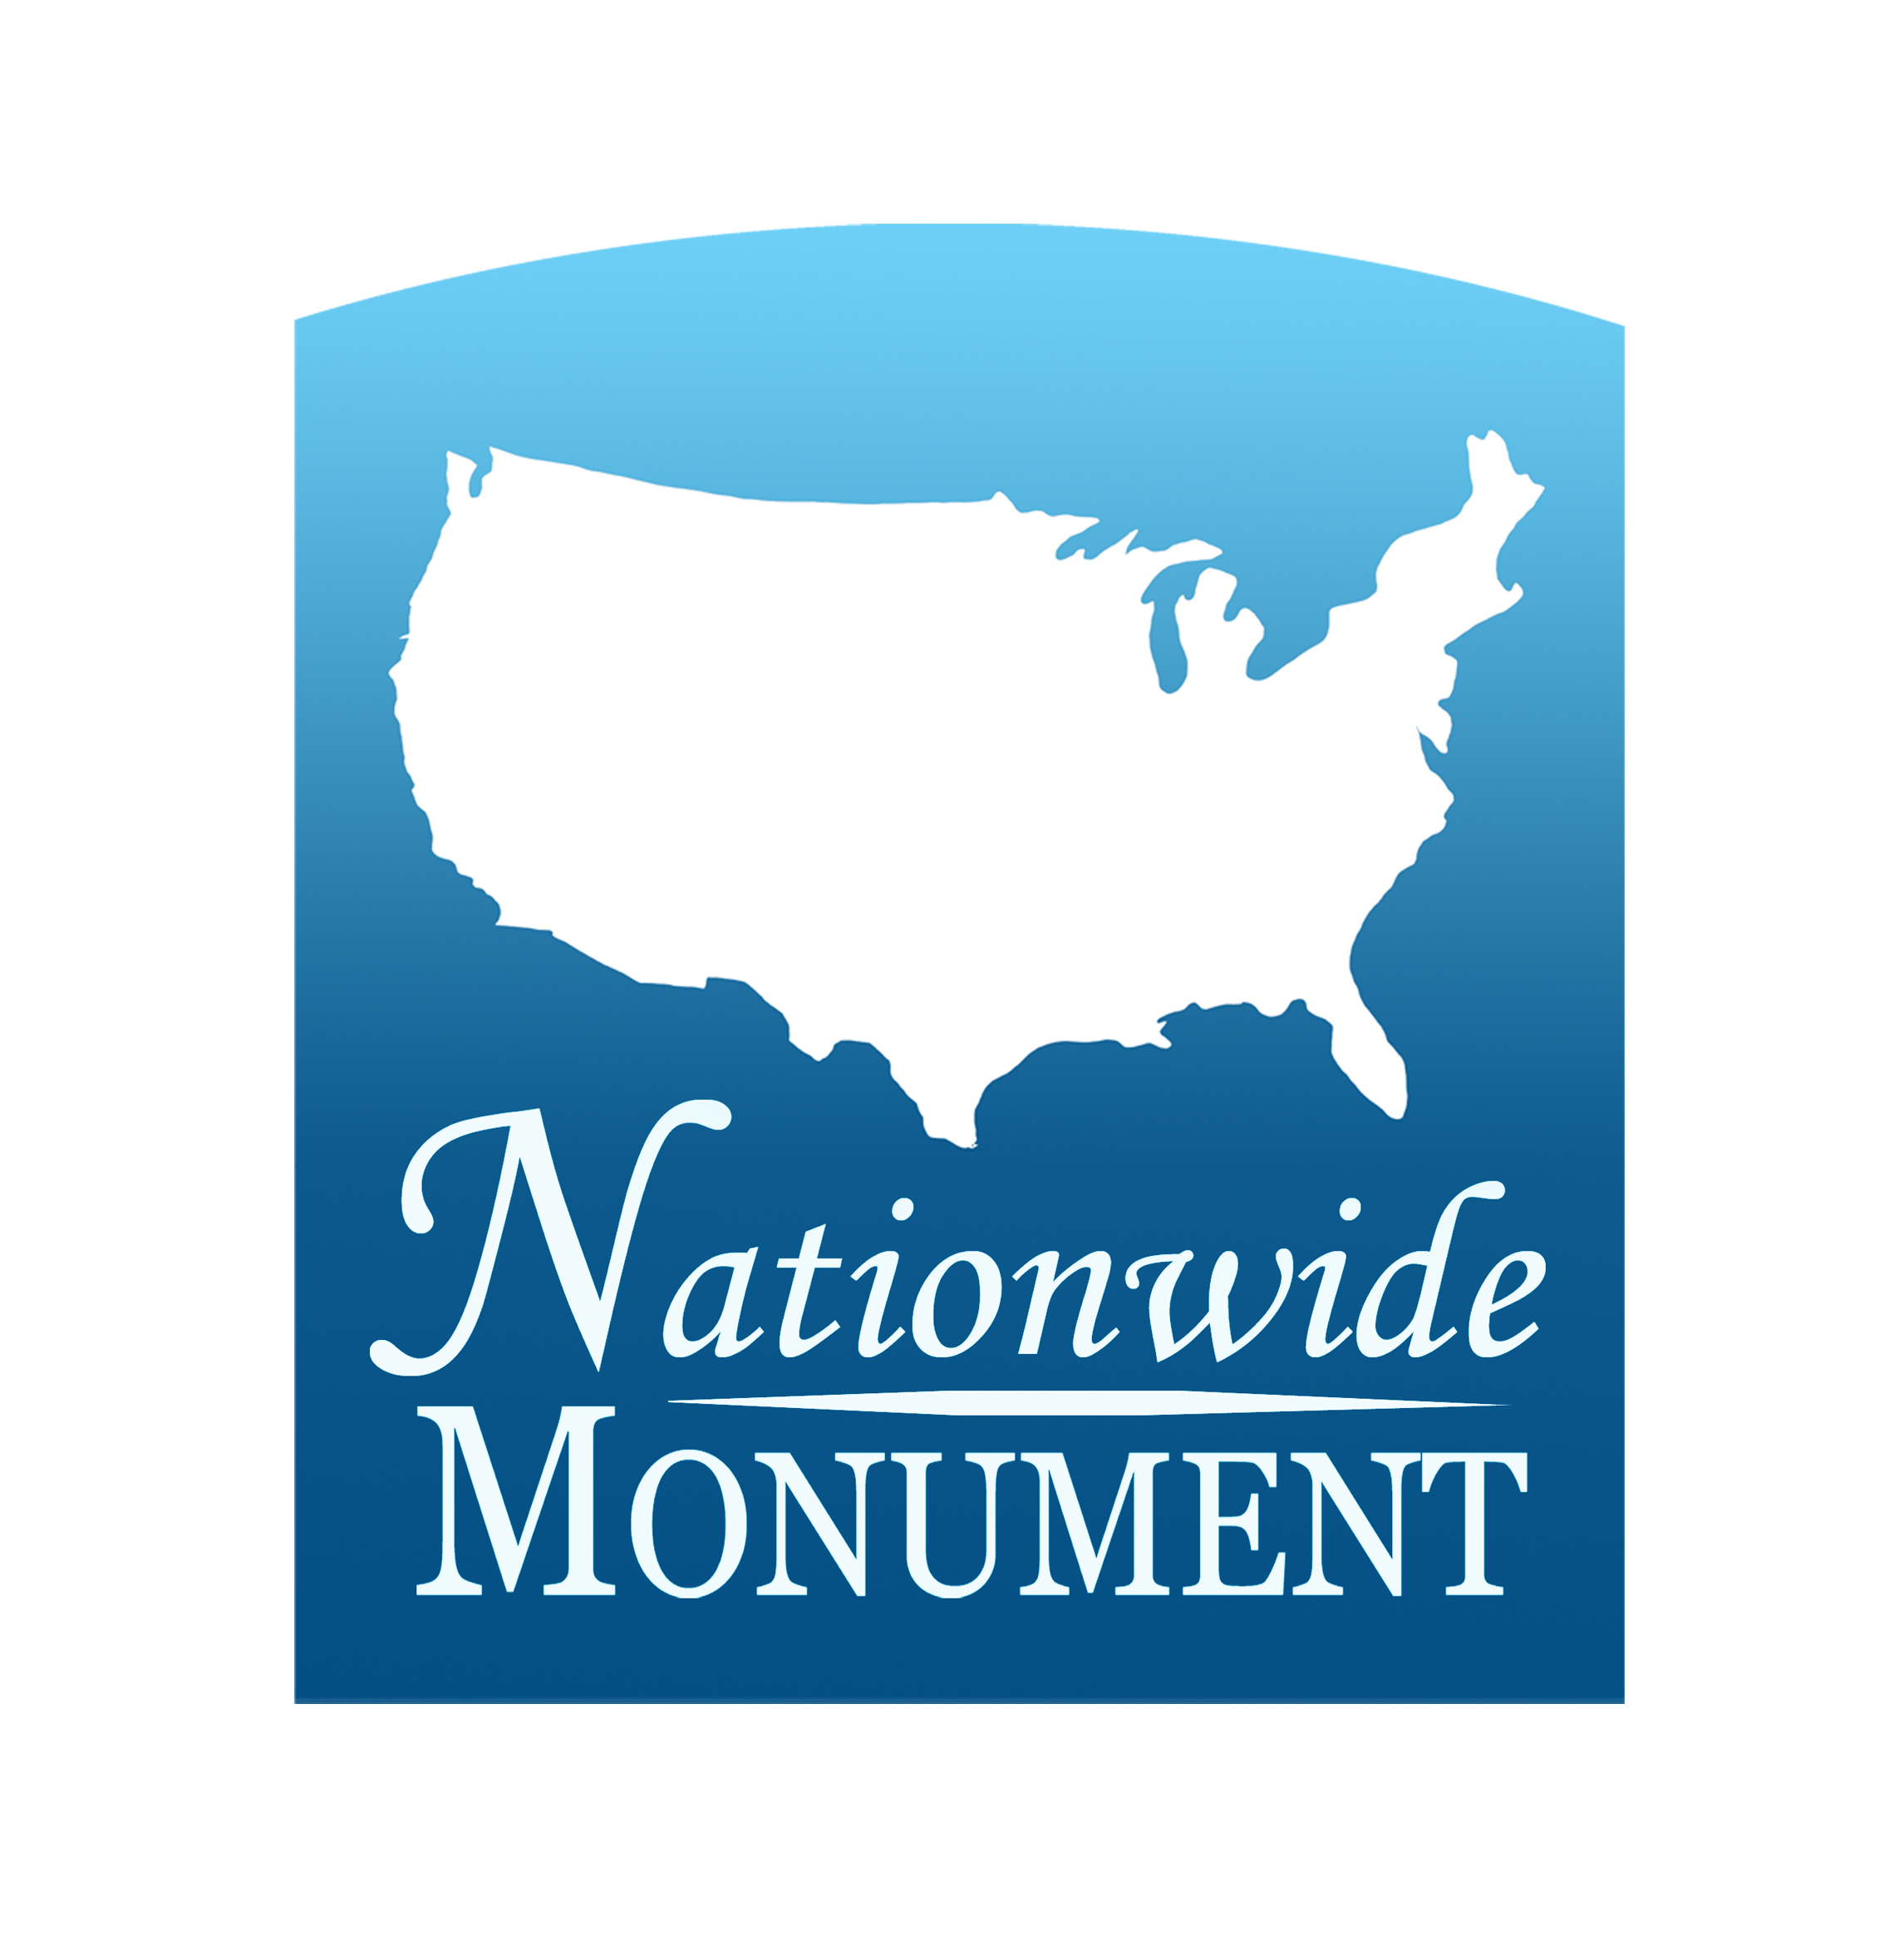 Nationwide Monument